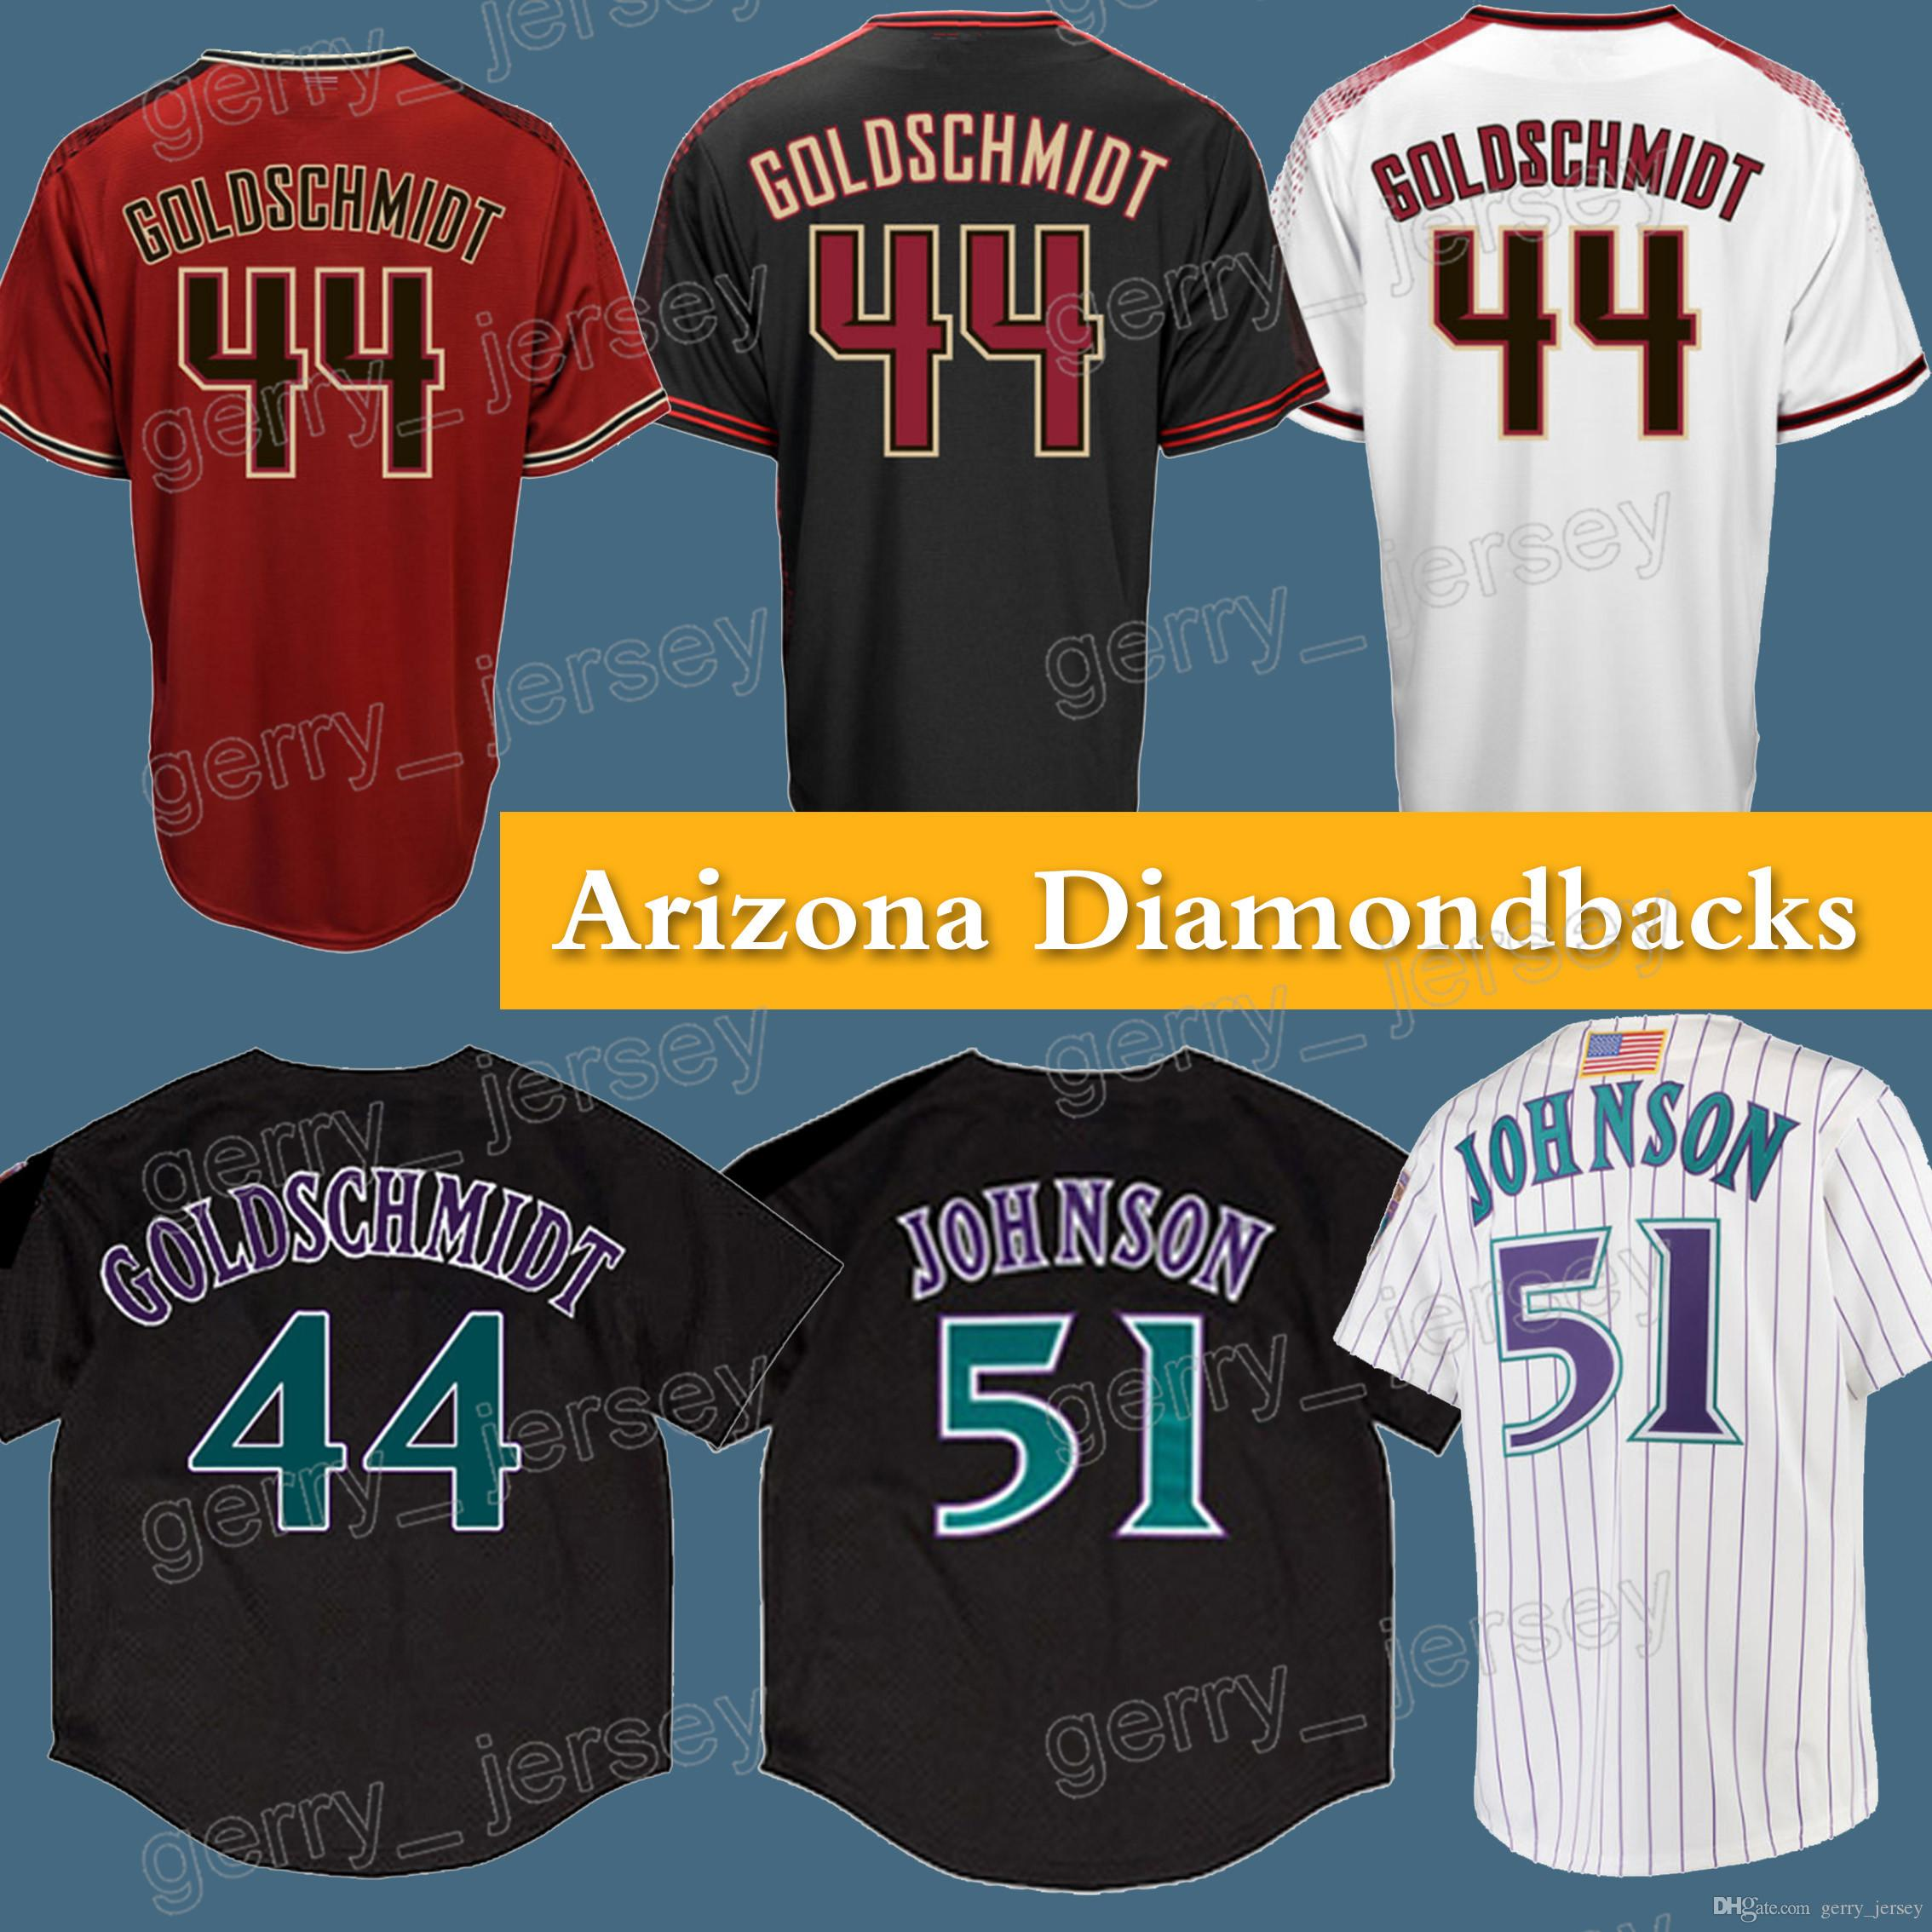 b13d3996 ... shop arizona diamondbacks jersey 1819 51 rj bh 44 paul goldschmidt  jersey high quality hot sale